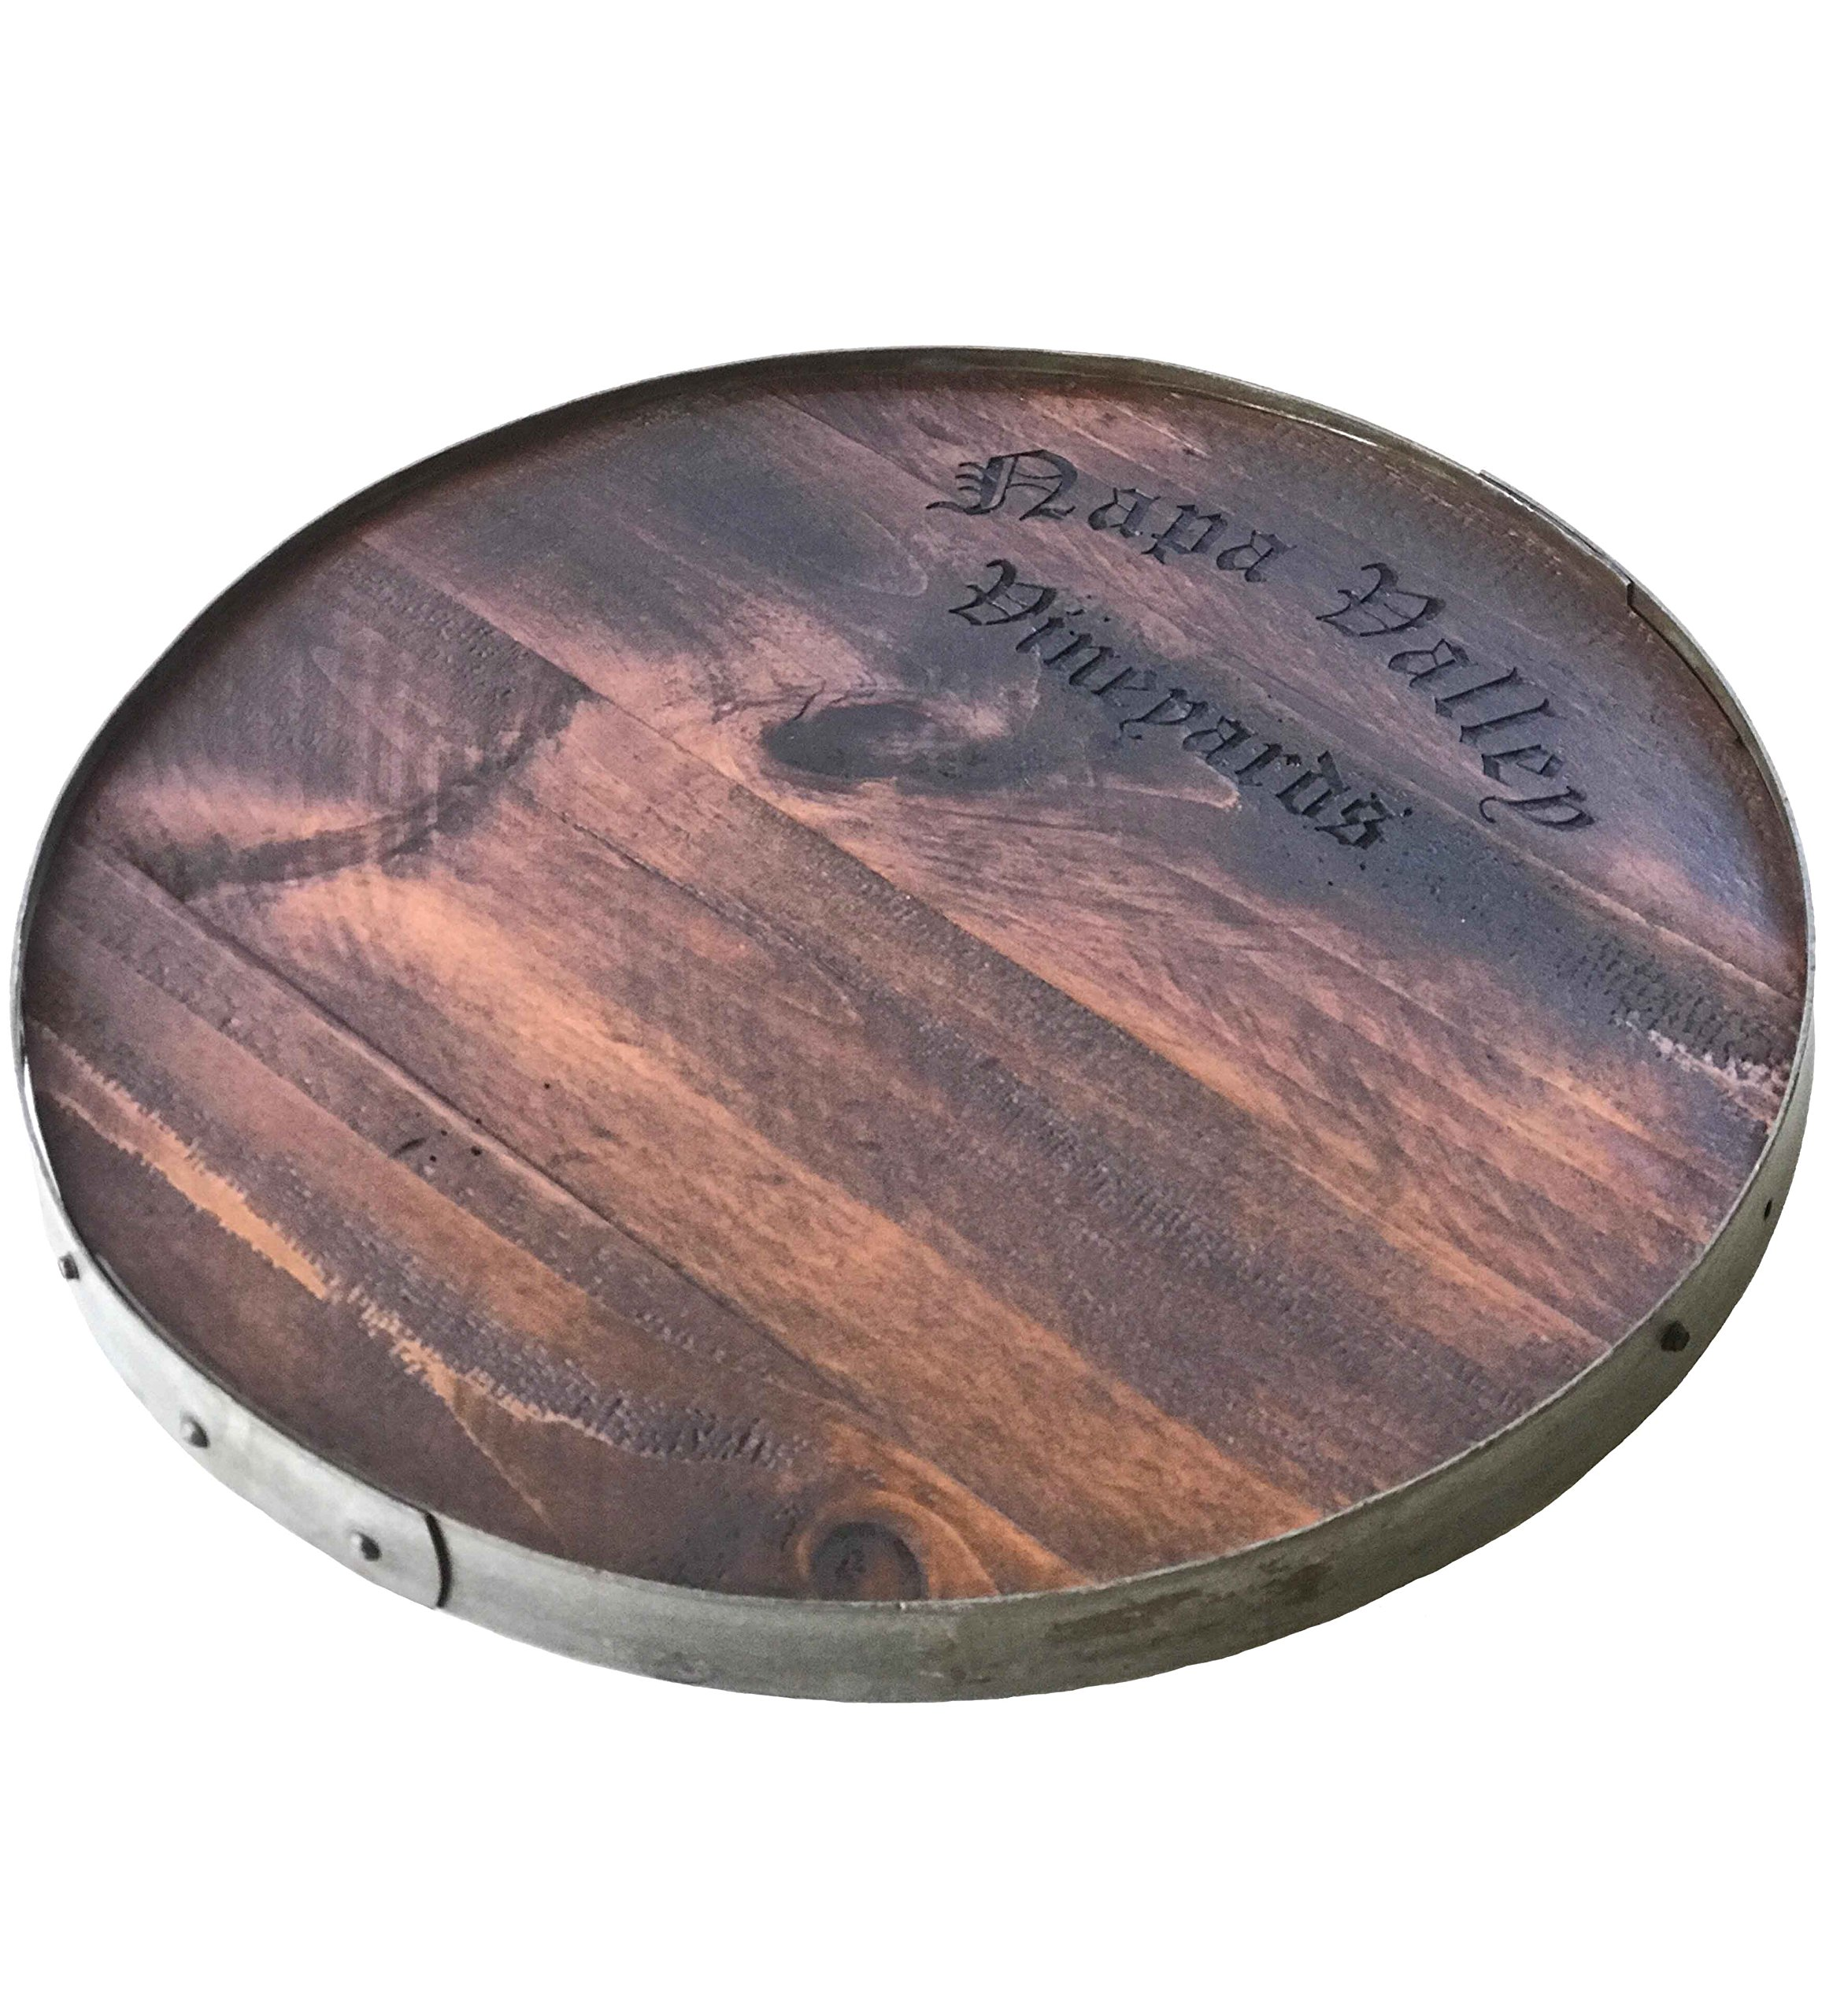 Napa Valley Vineyards Wine Barrel Lazy Susan with Barrel Ring Lip, 20-Inches Diameter by Rustic Wall Co.